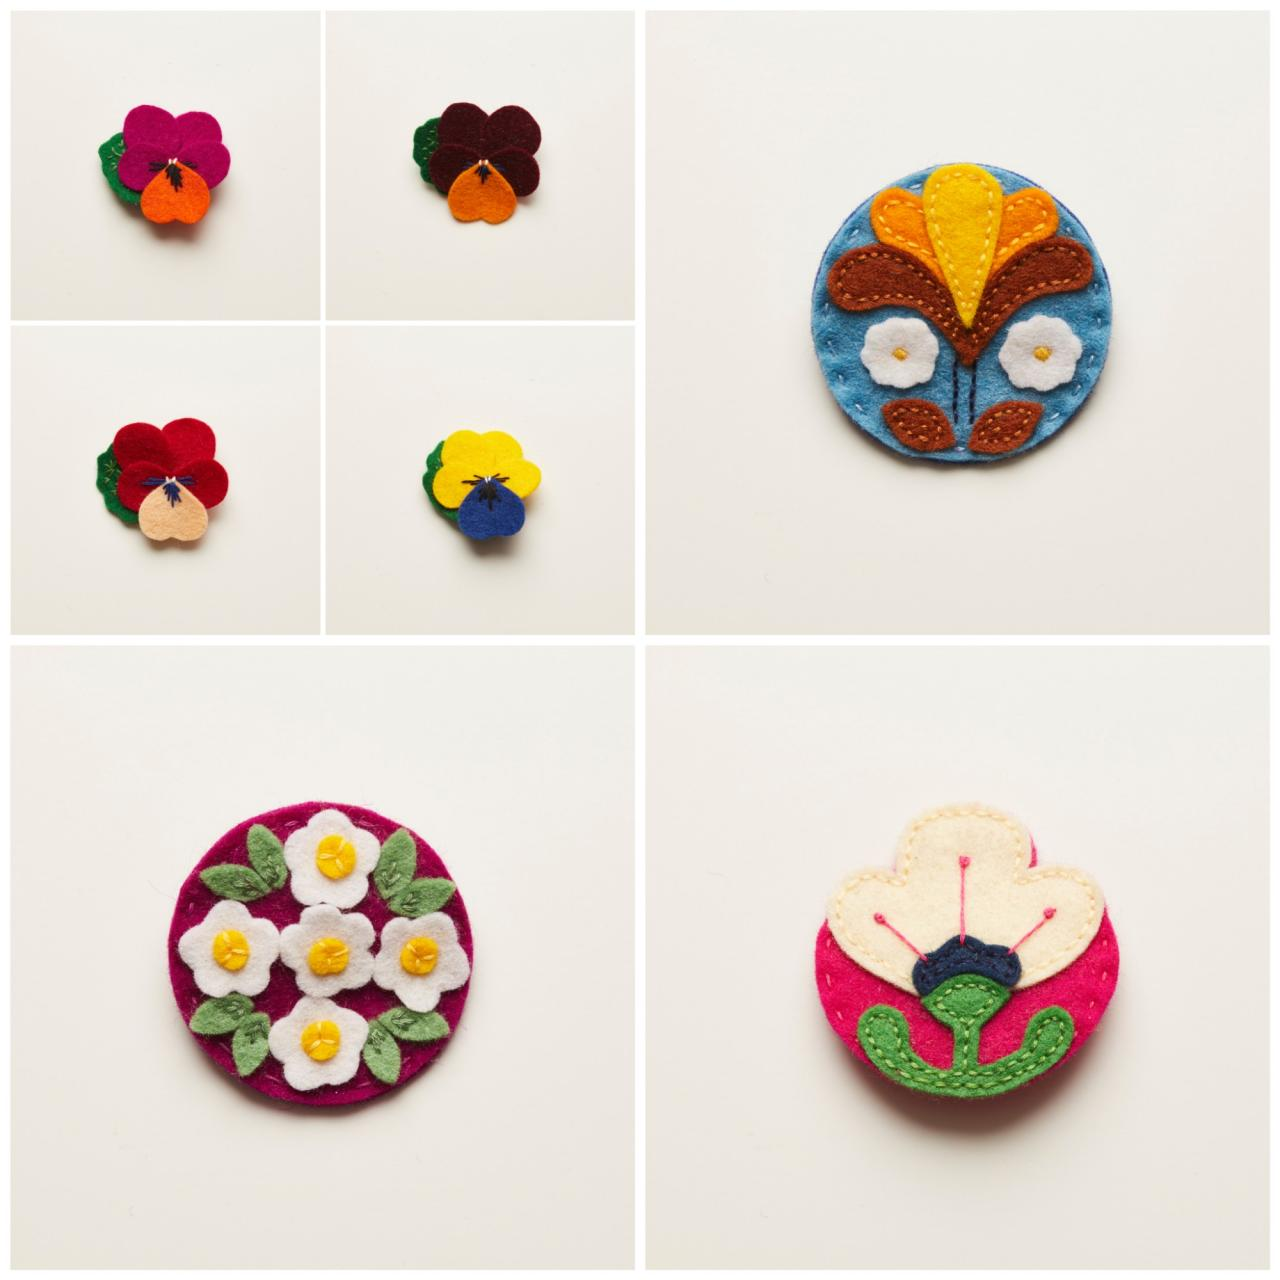 Stitch Studio floral brooches